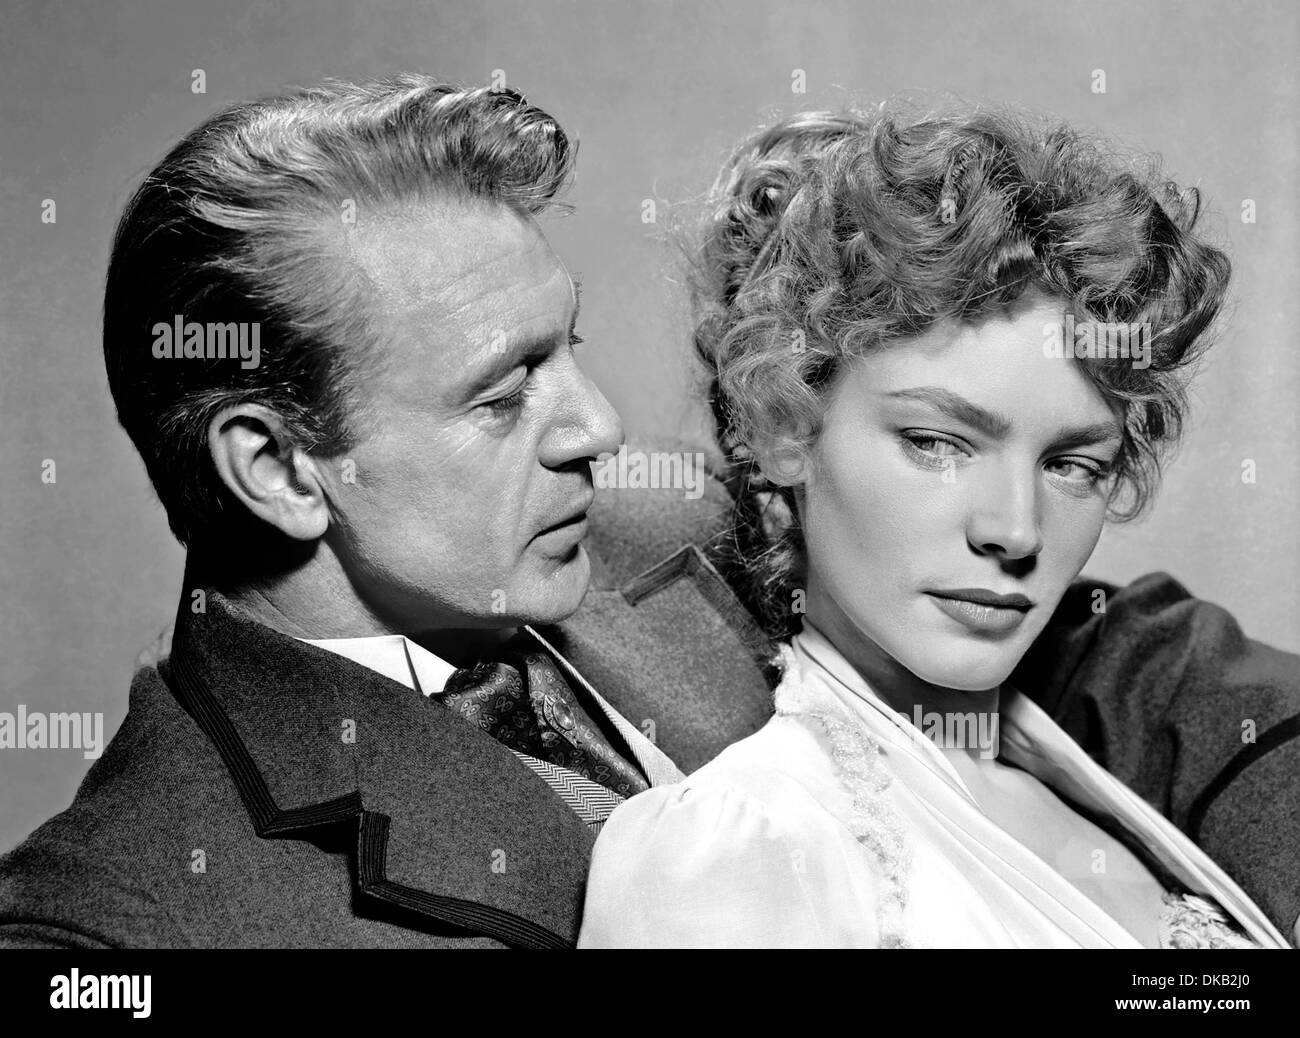 bright leaf 1950 warner bros film with gary cooper and lauren bacall